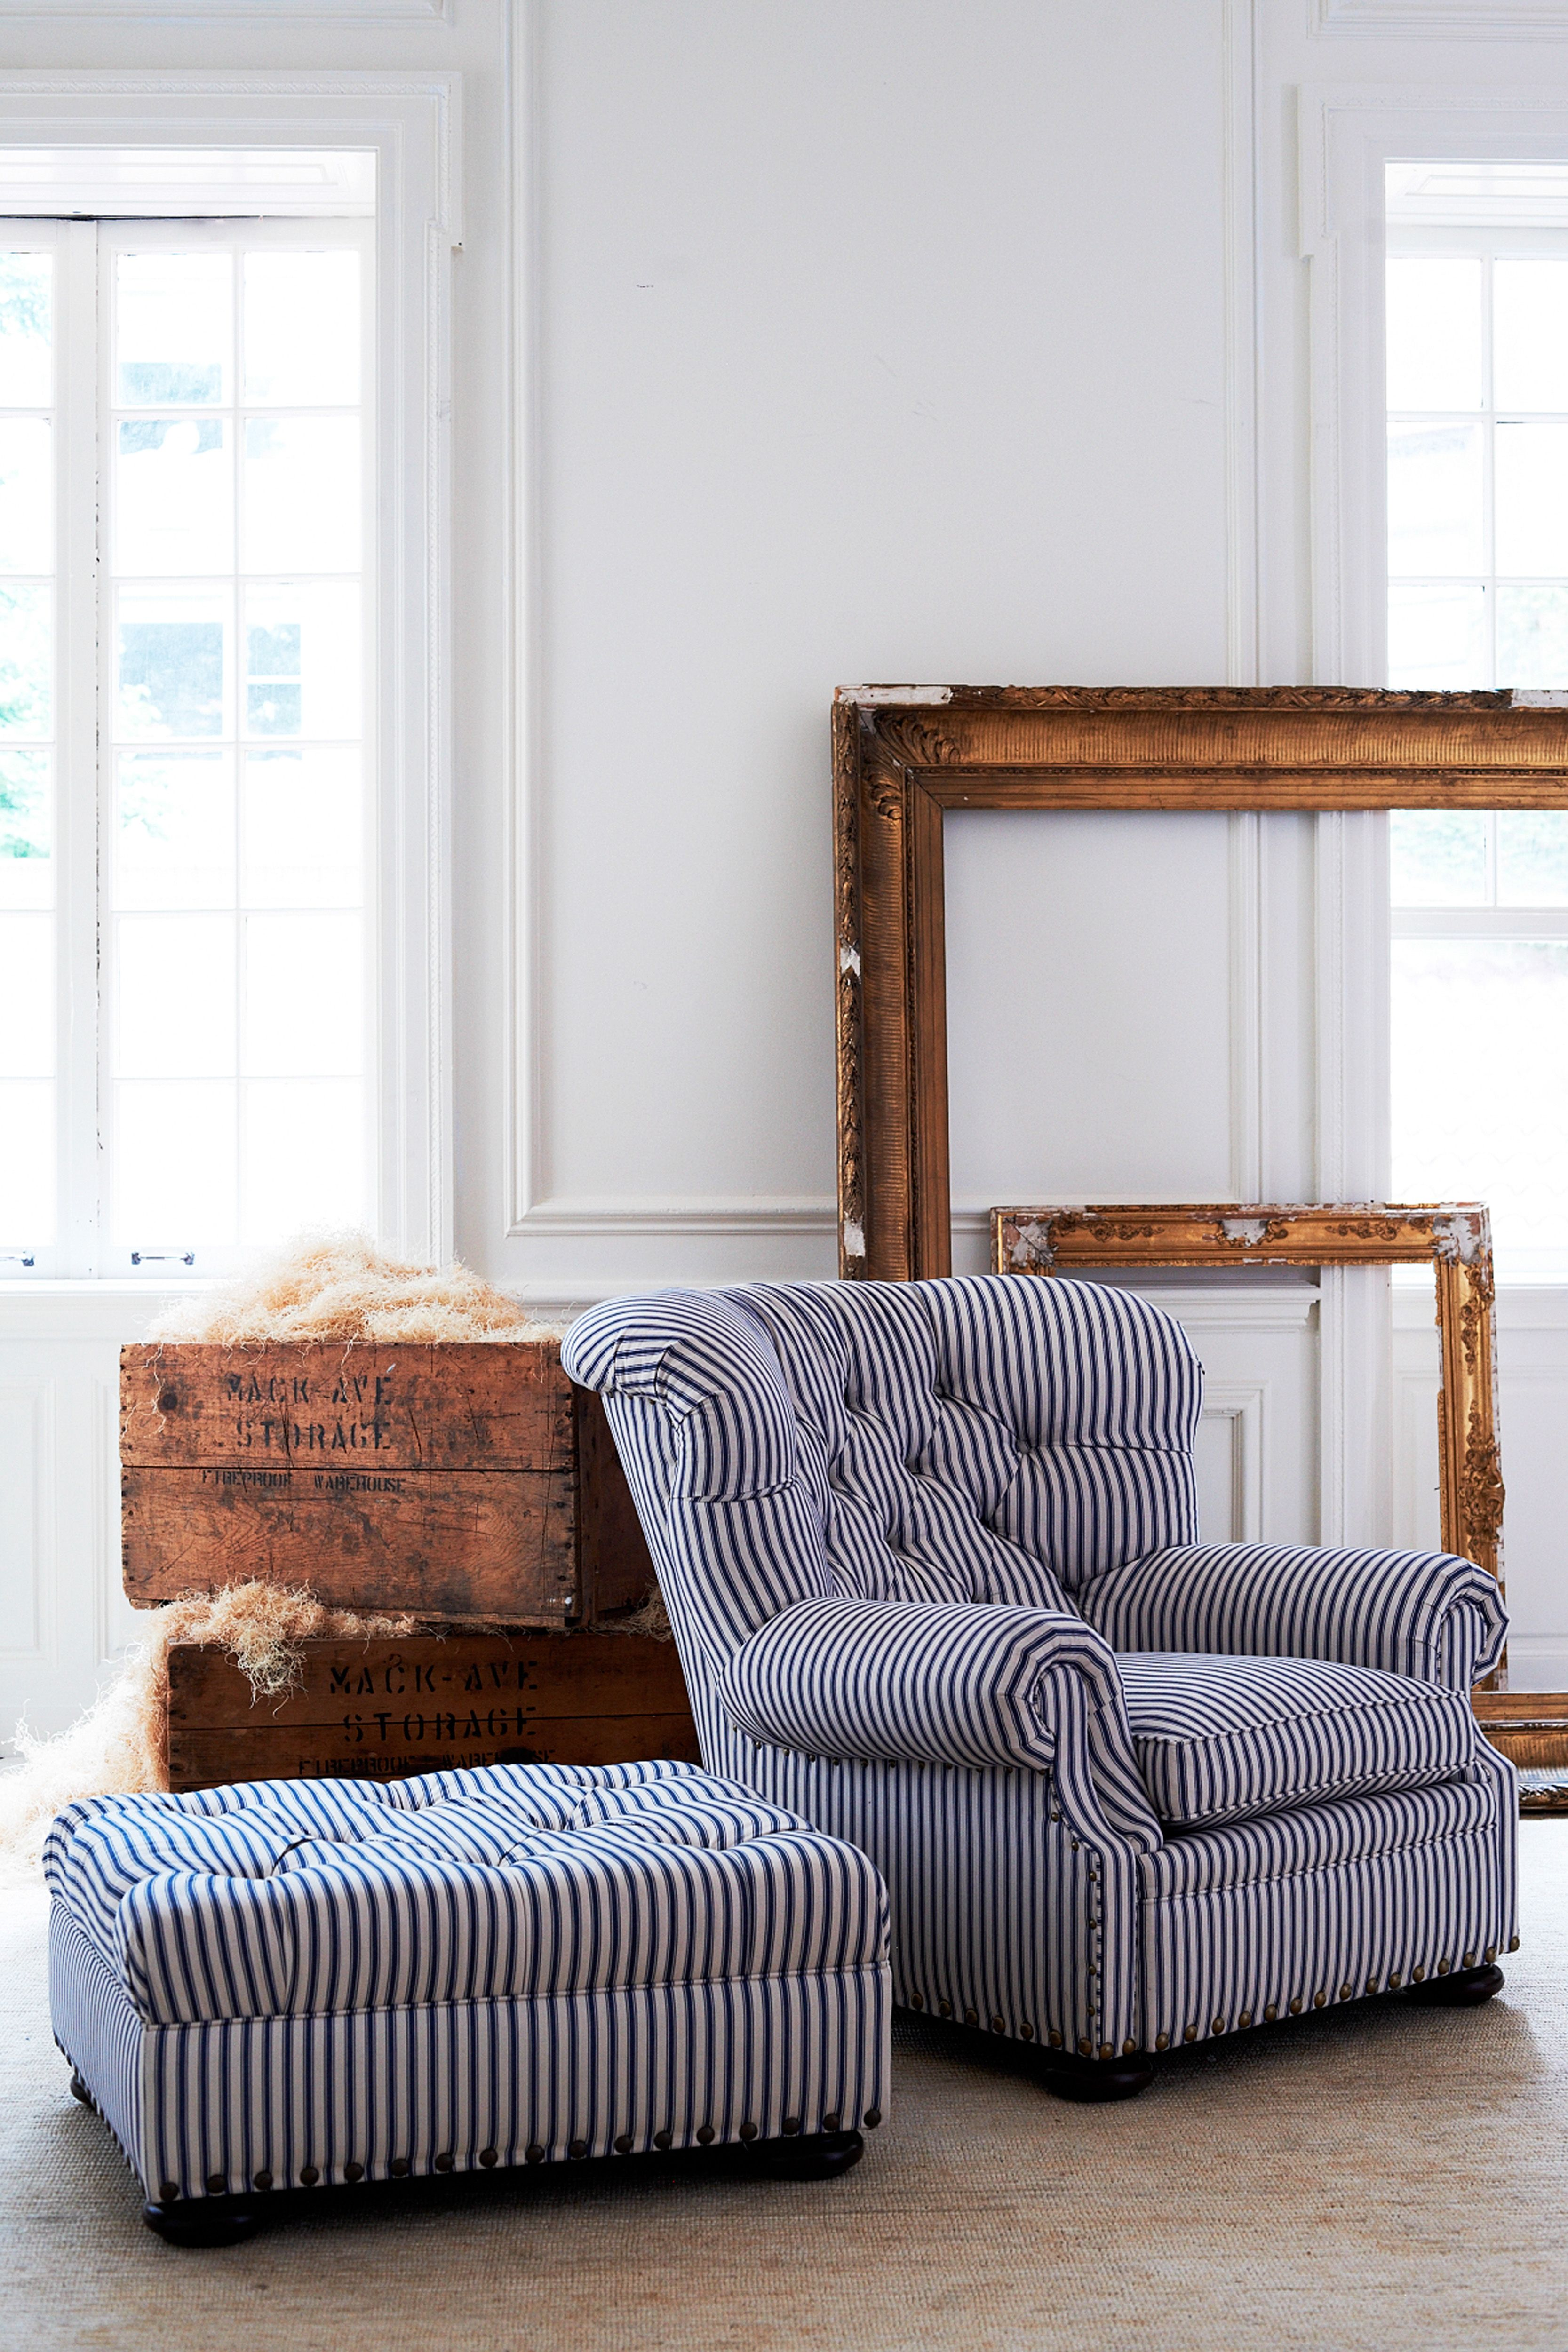 Tufted Chair And Ottoman Camping Chairs Walmart Ralph Lauren Home S Writer Reimagined In Blue White Ryan Stripe Fabric